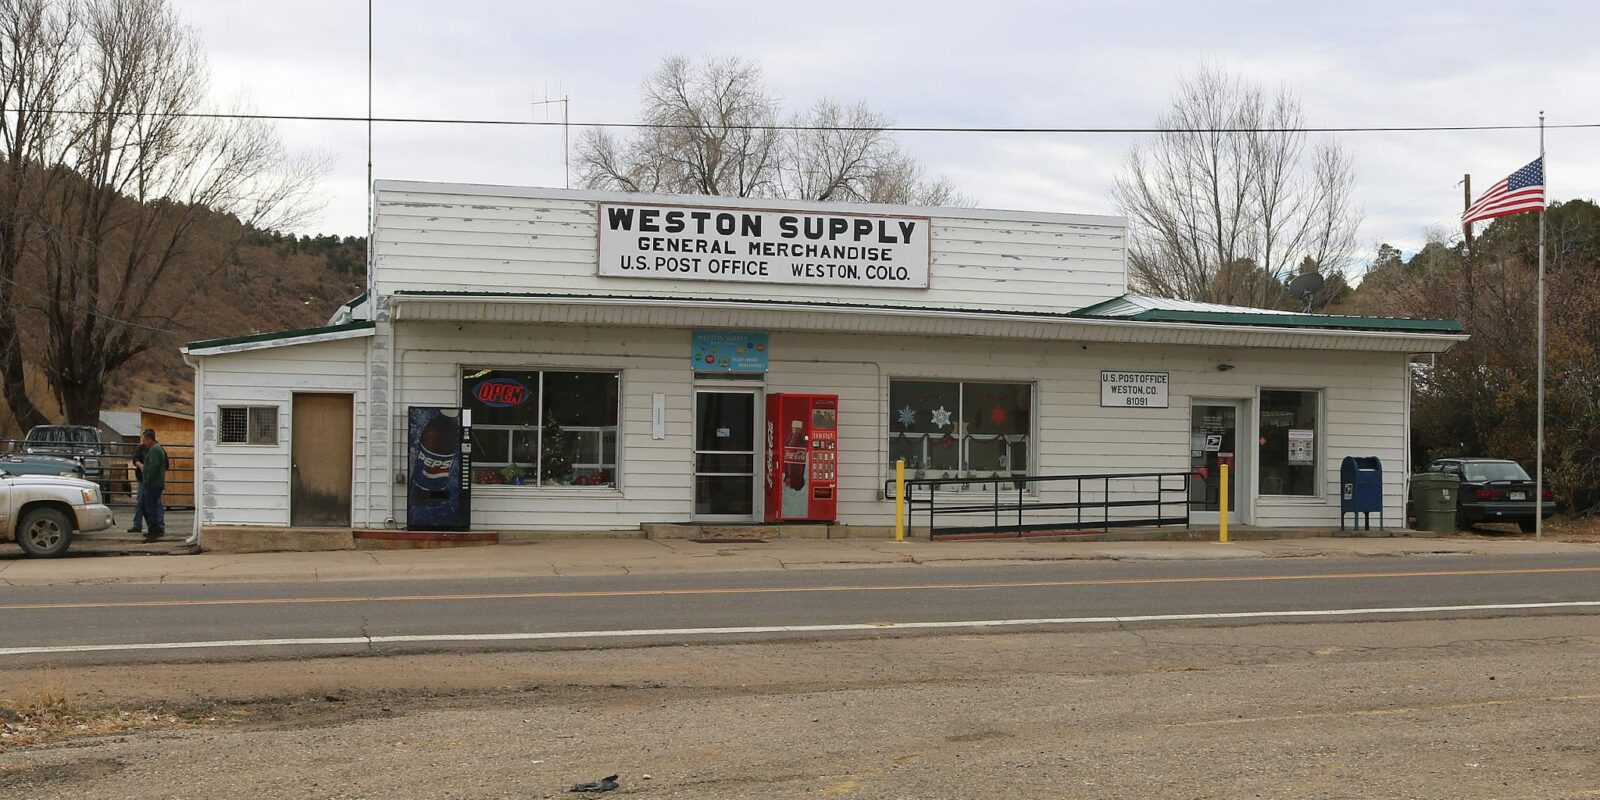 Weston CO Weston Supply General Store U.S. Post Office